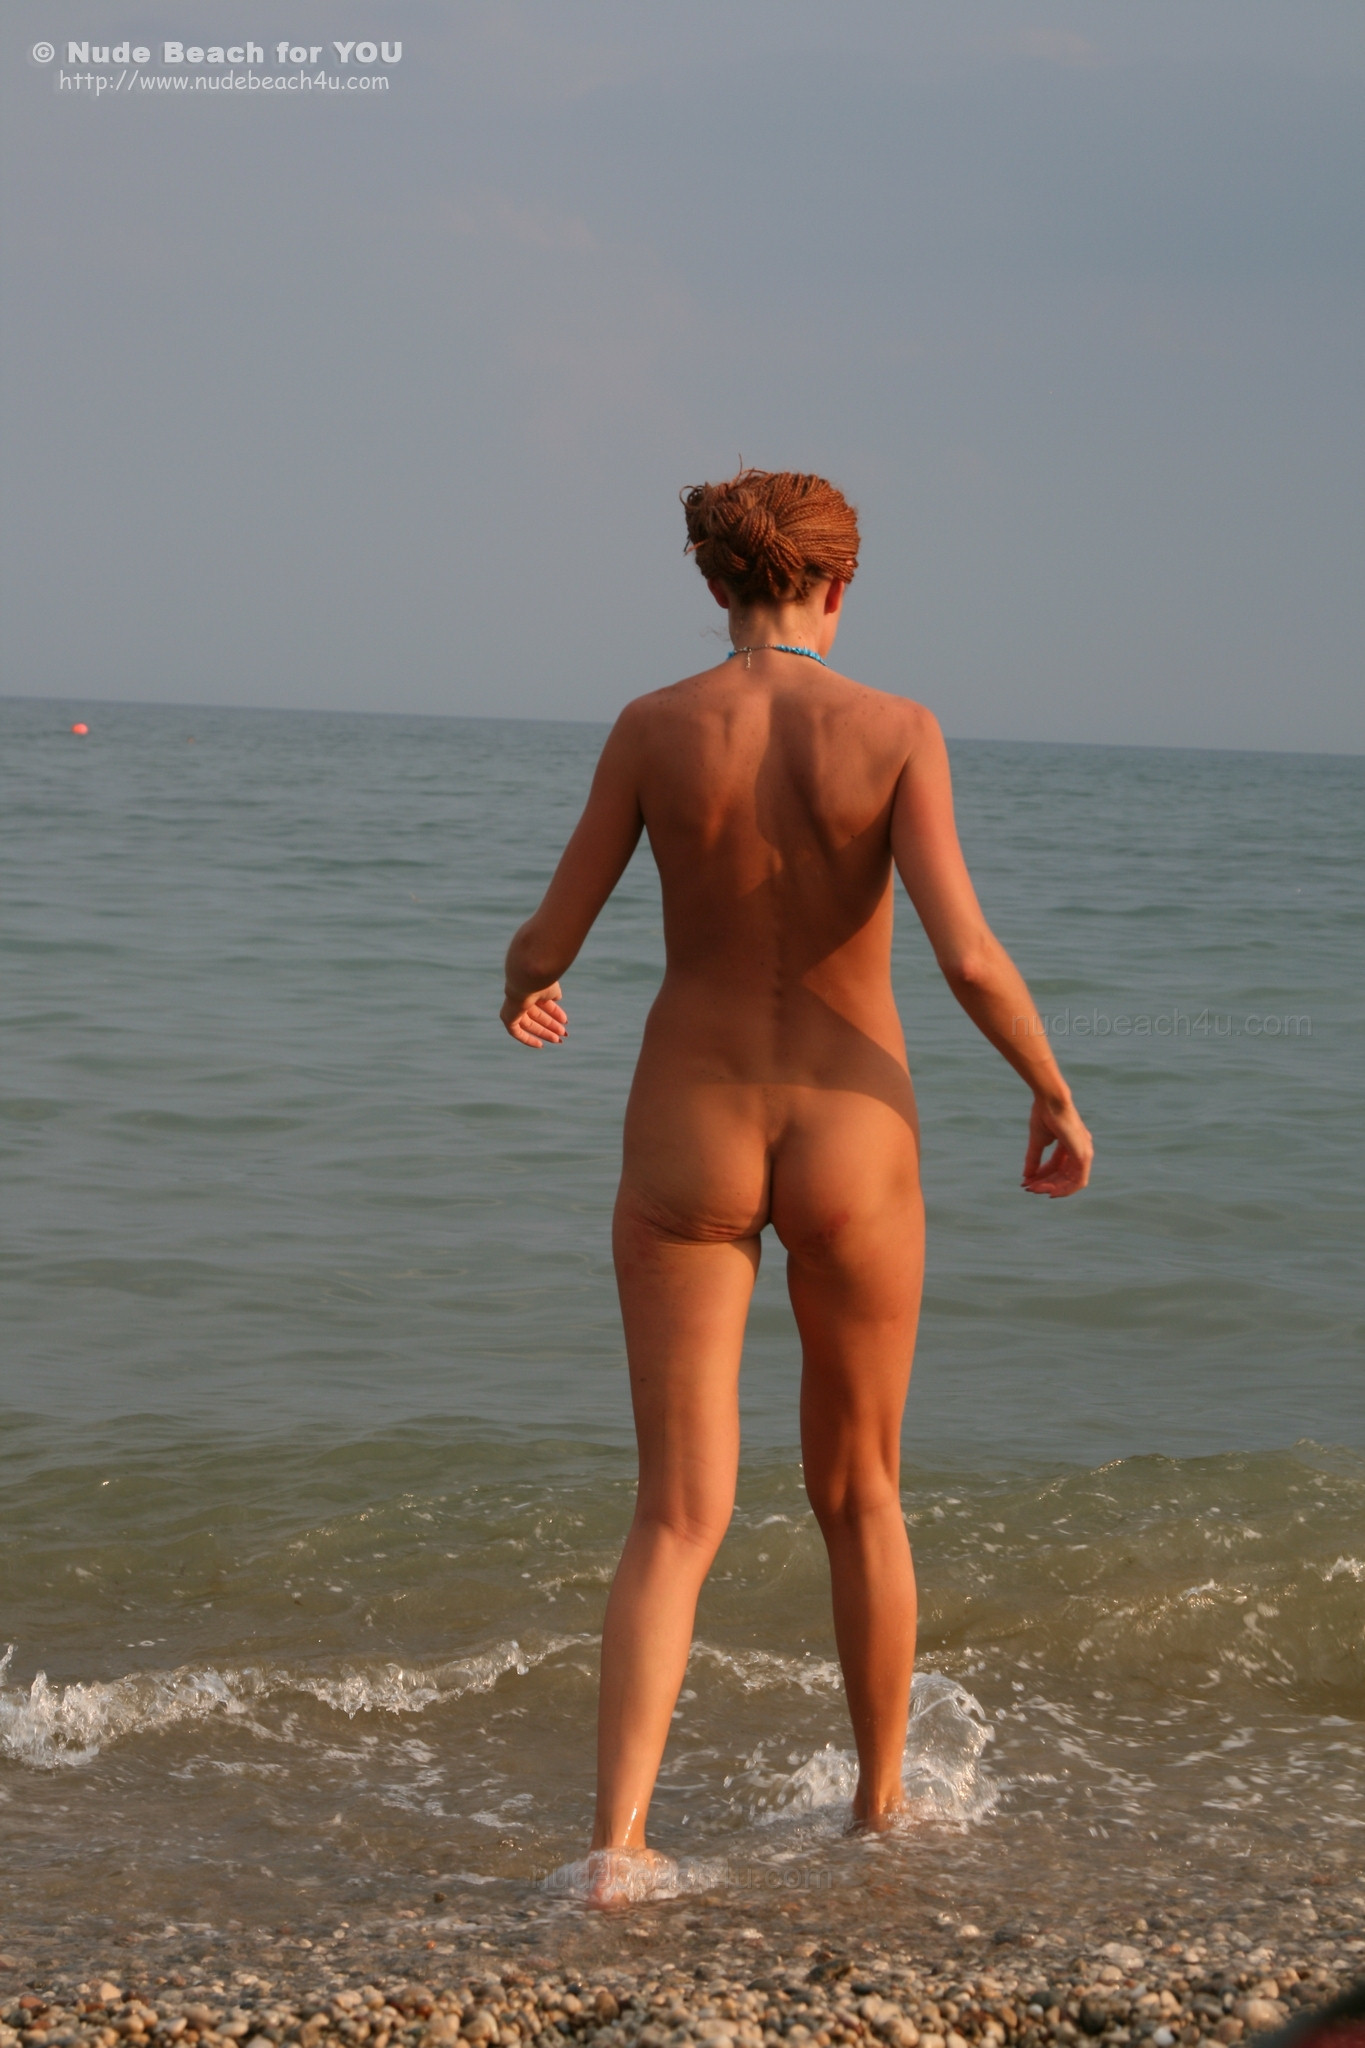 pure nudism.com brazilianmodel young jpg4 Onion young nude[pimpandhost ru onion@$pure nudism mom and ...